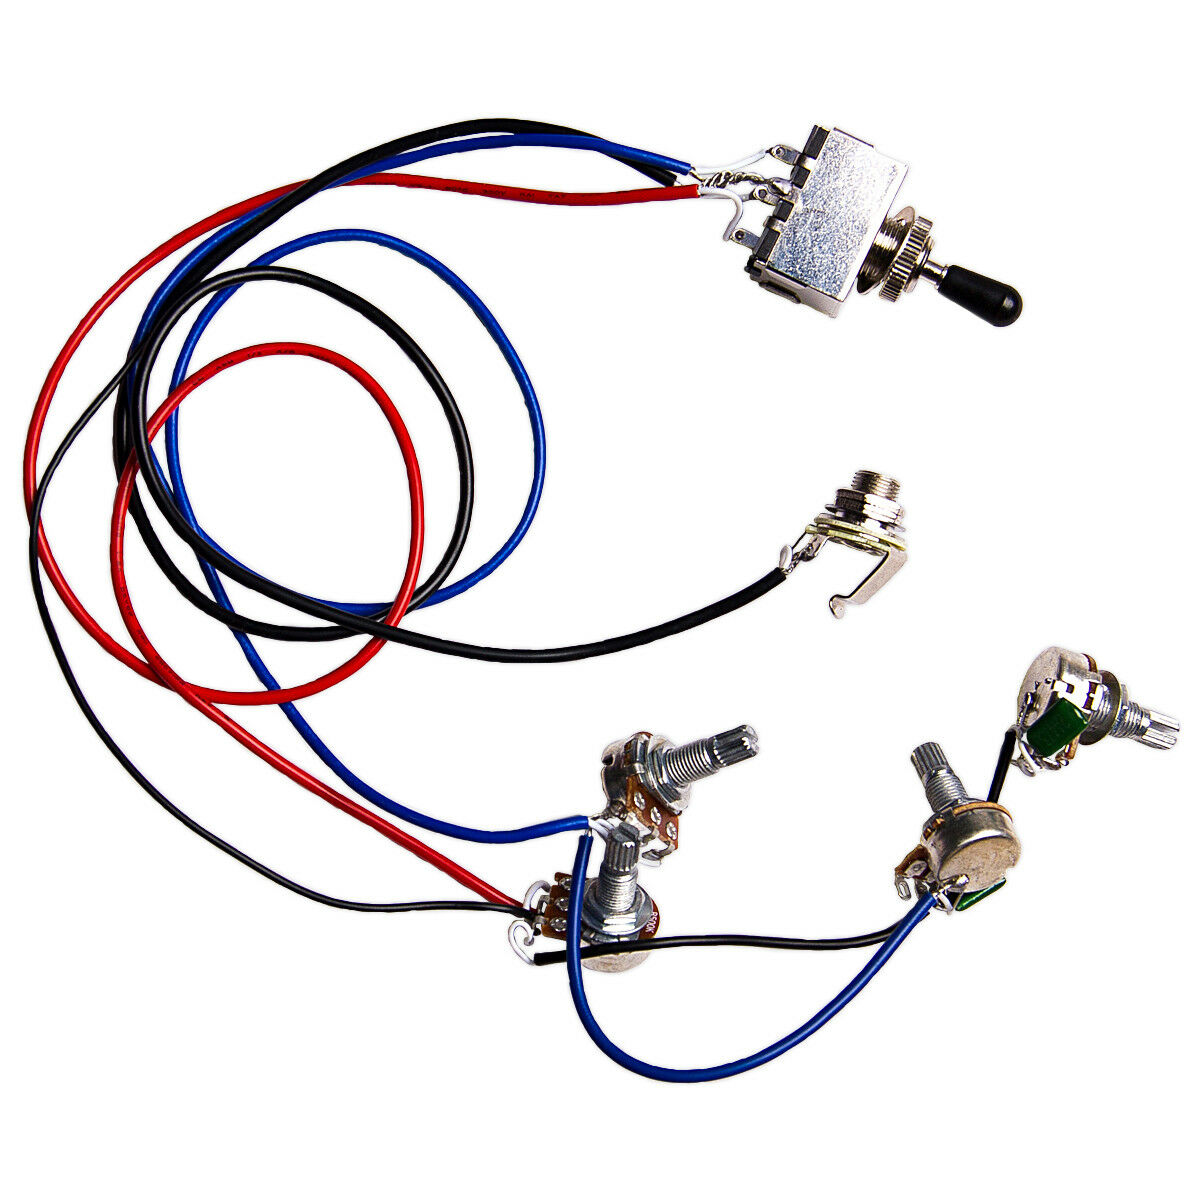 hight resolution of electric guitar wiring harness kit 2v2t 3 way switch for guitar parts